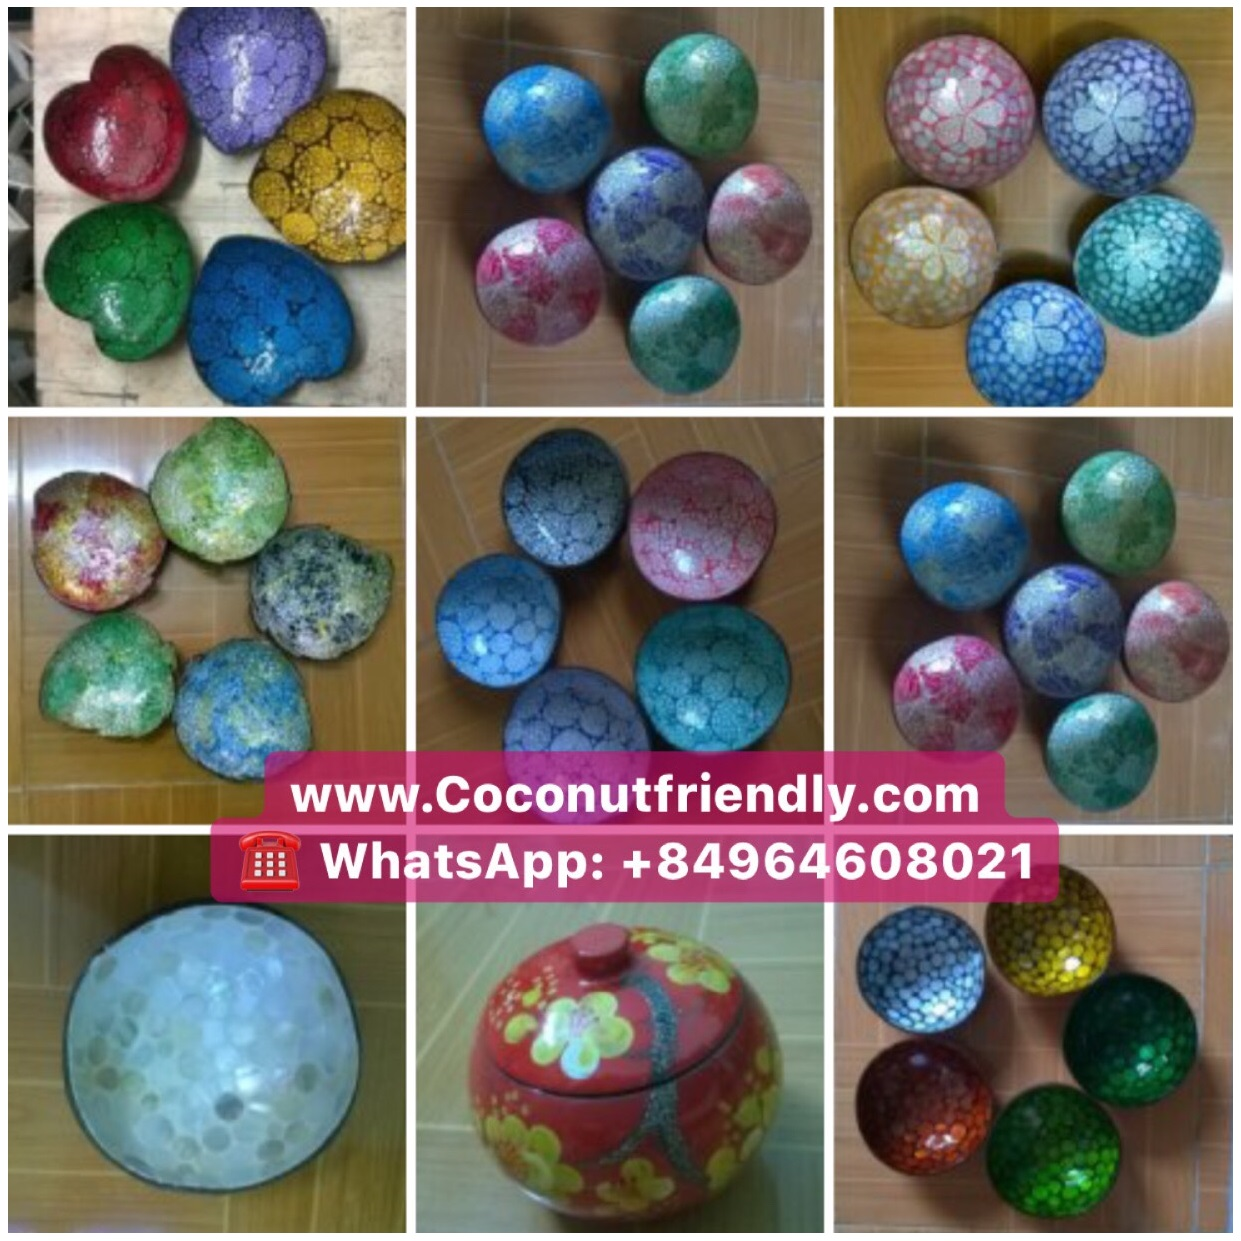 Mosaic Mother of Pearl Lacquer Coconut Bowls from Vietnam Manufacturer Direct Sale